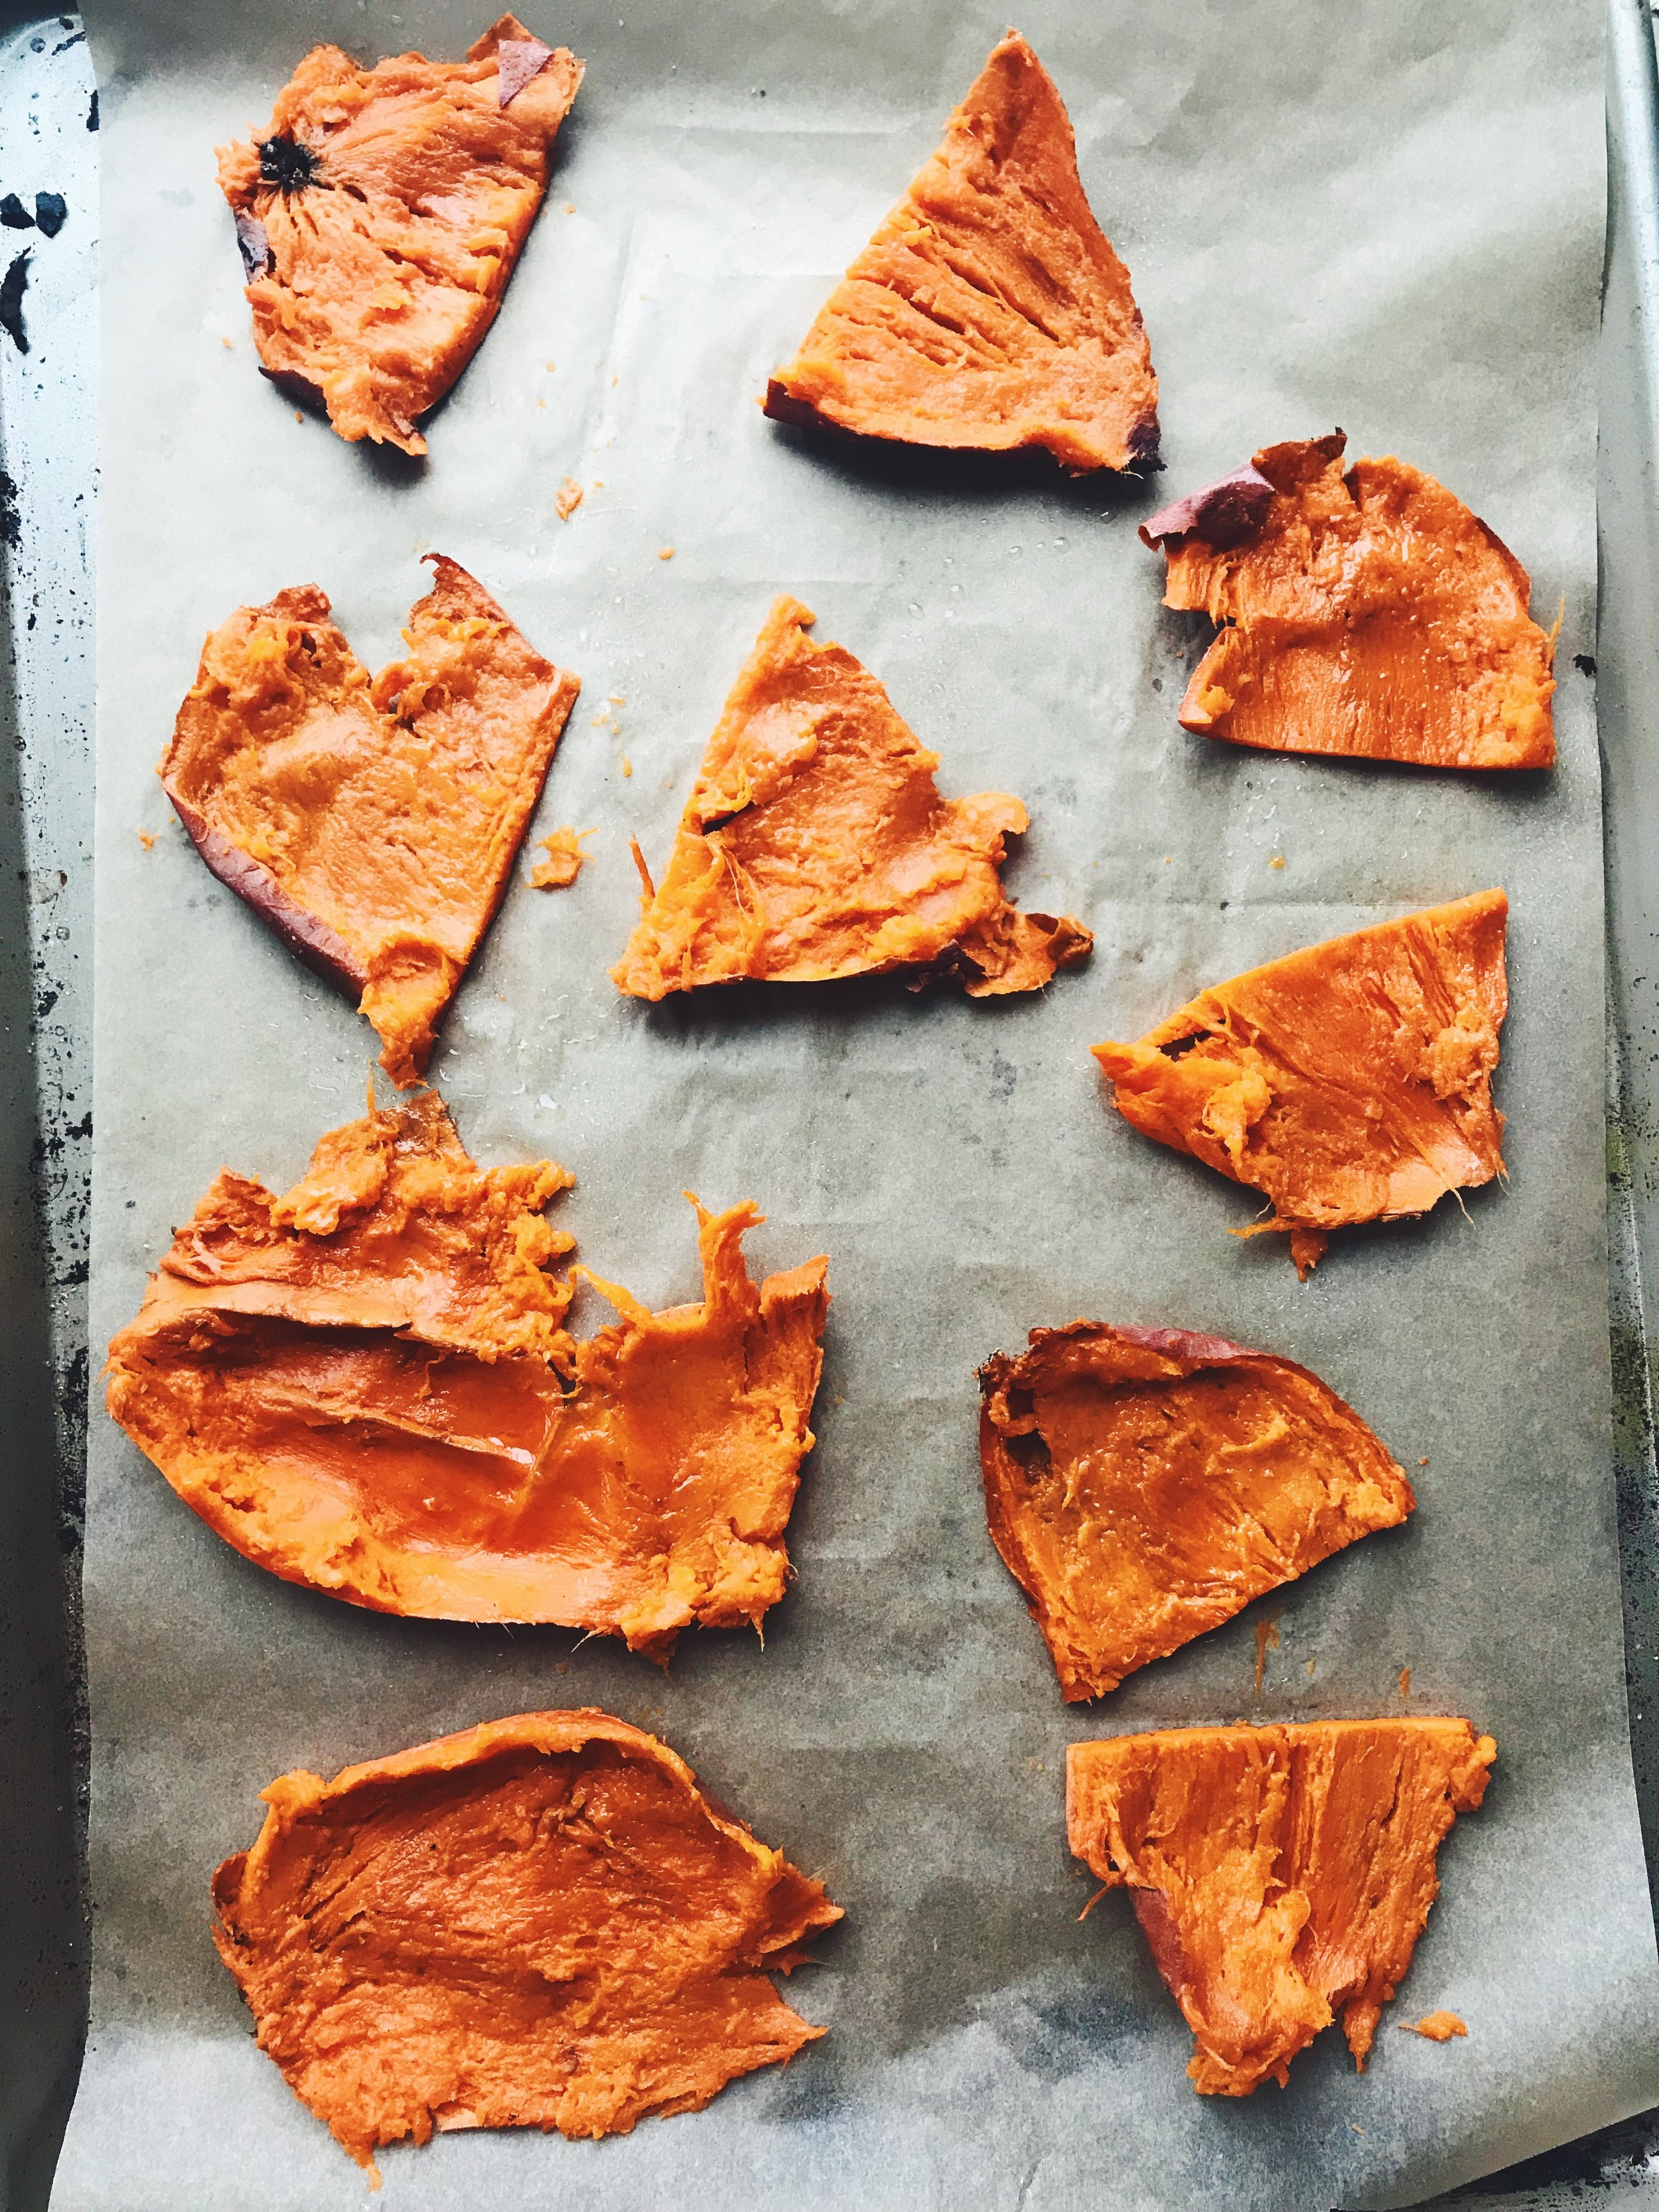 the sweet potato skins BEFORE they have been placed in the oven under the broiler.